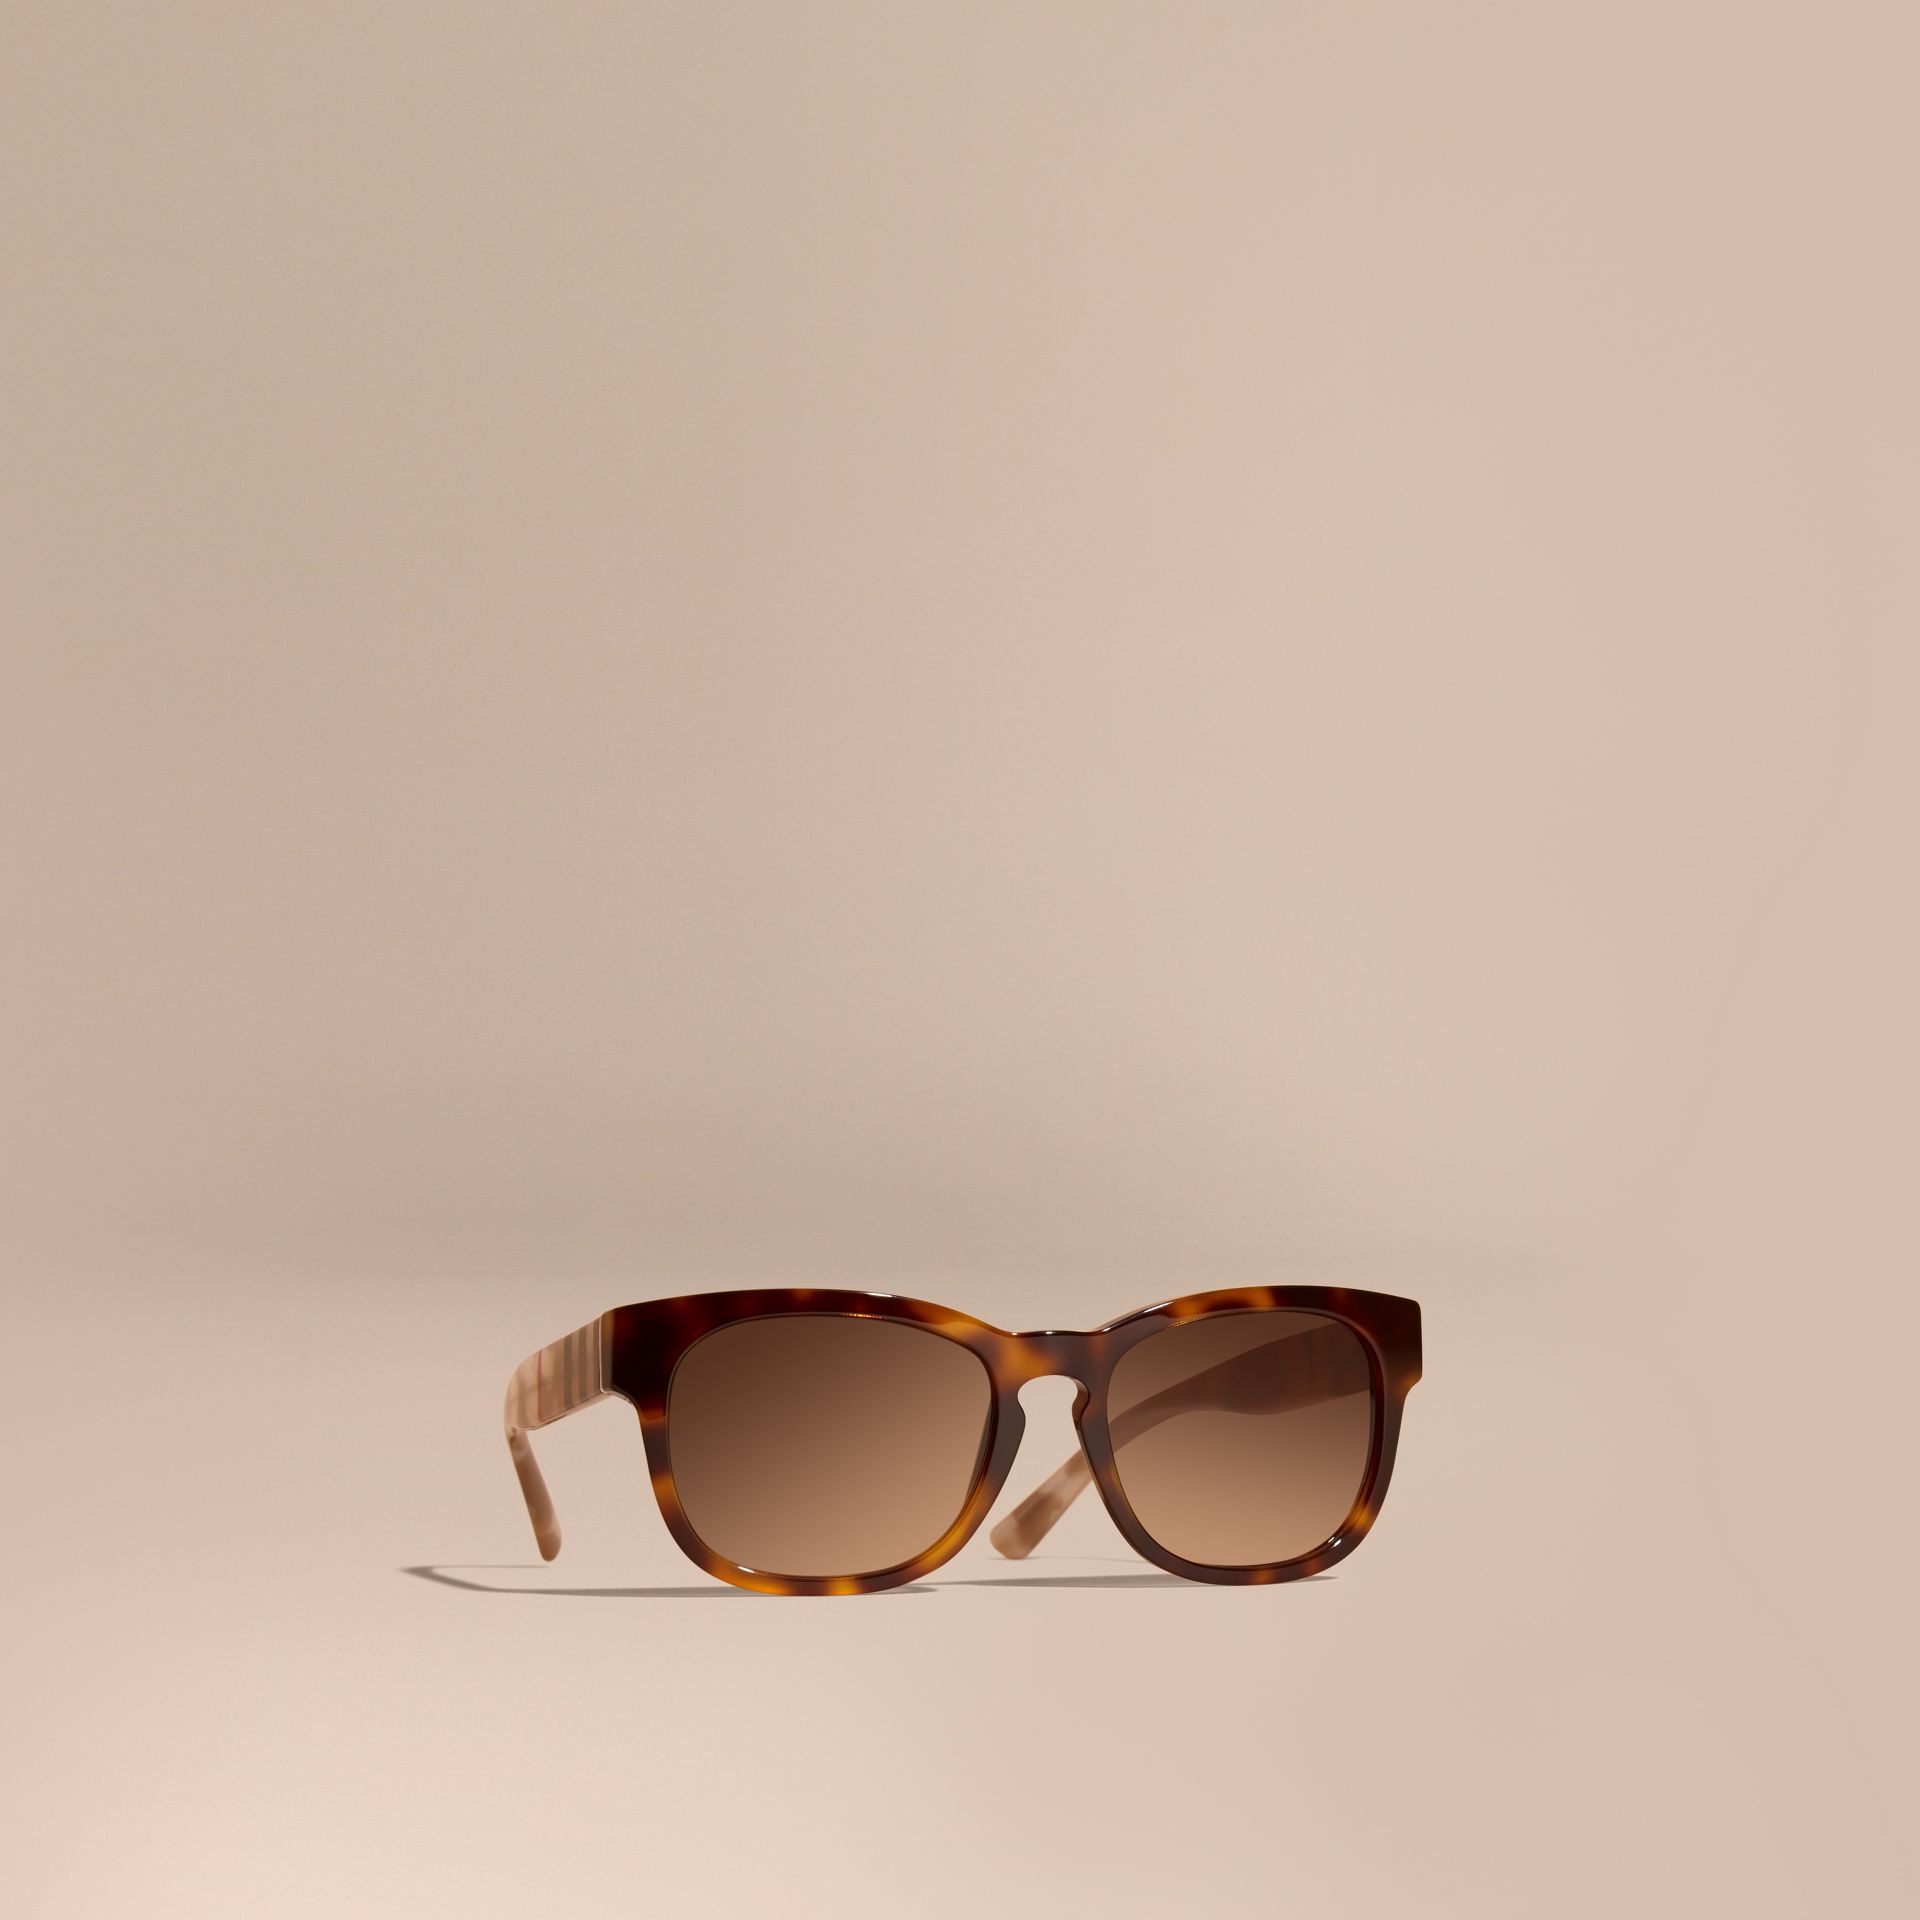 Check and Camouflage Detail Square Frame Sunglasses Light Russet Brown - gallery image 1